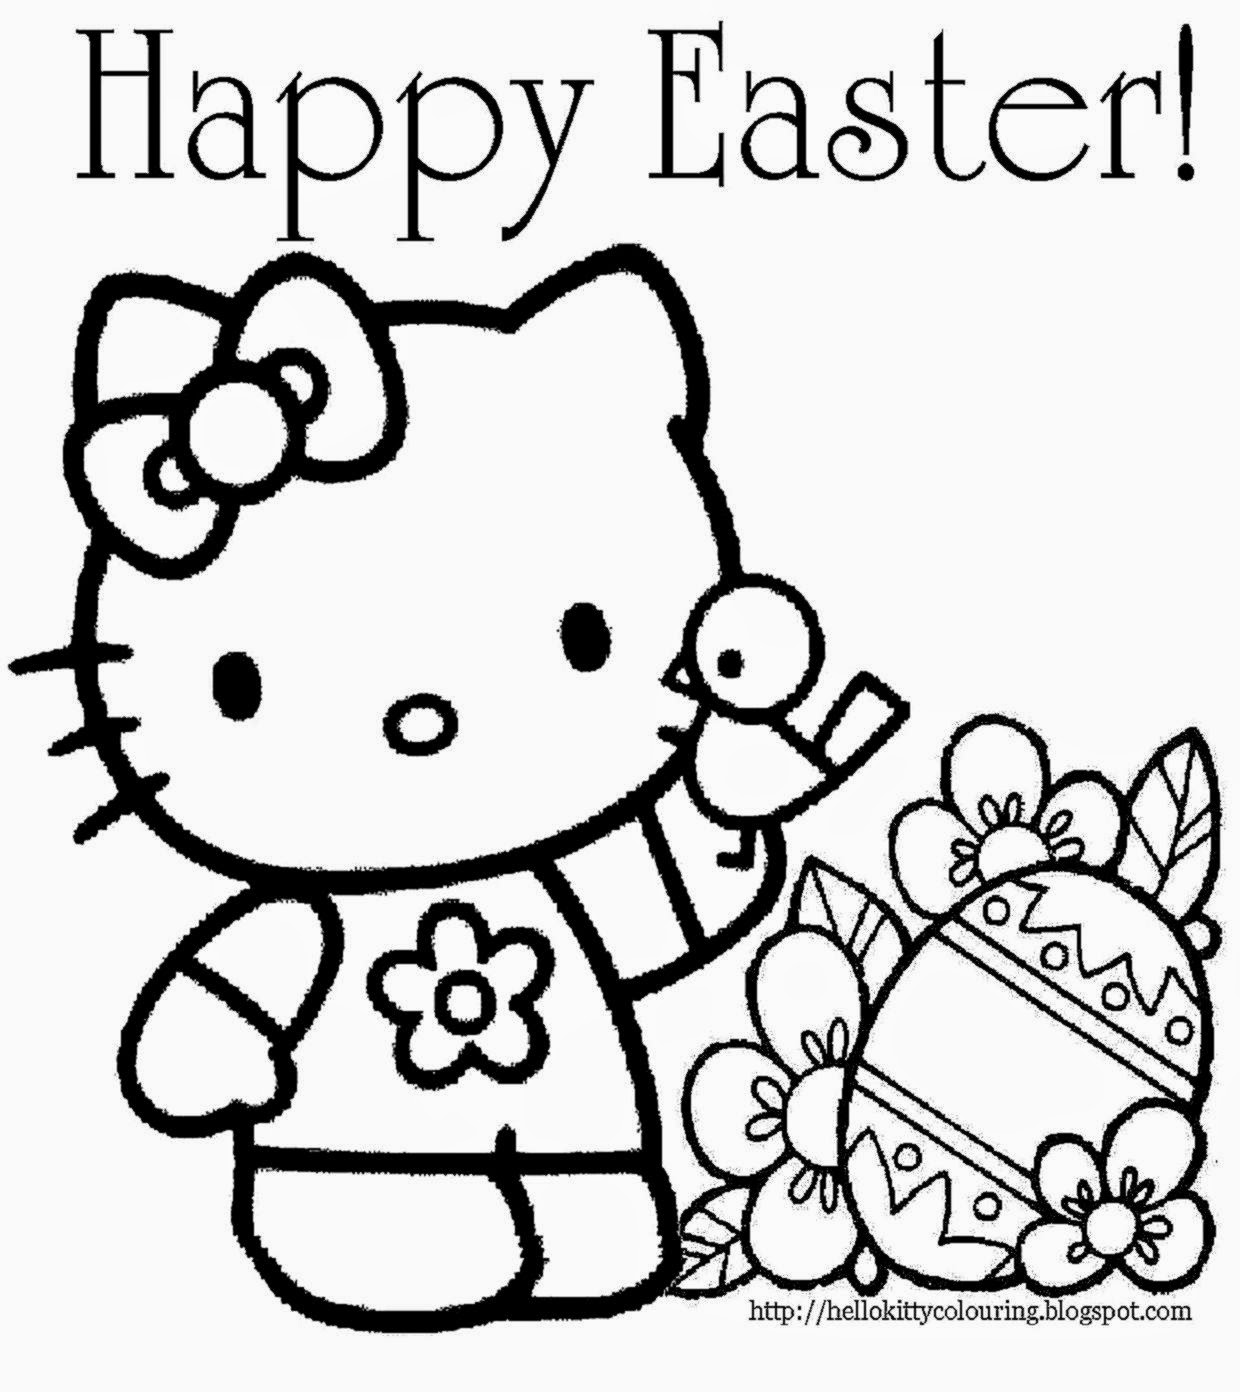 Fr free printable christian adult coloring pages - Free Coloring Pages For Easter Religious Www Easter Coloring Pages Coloringpages321